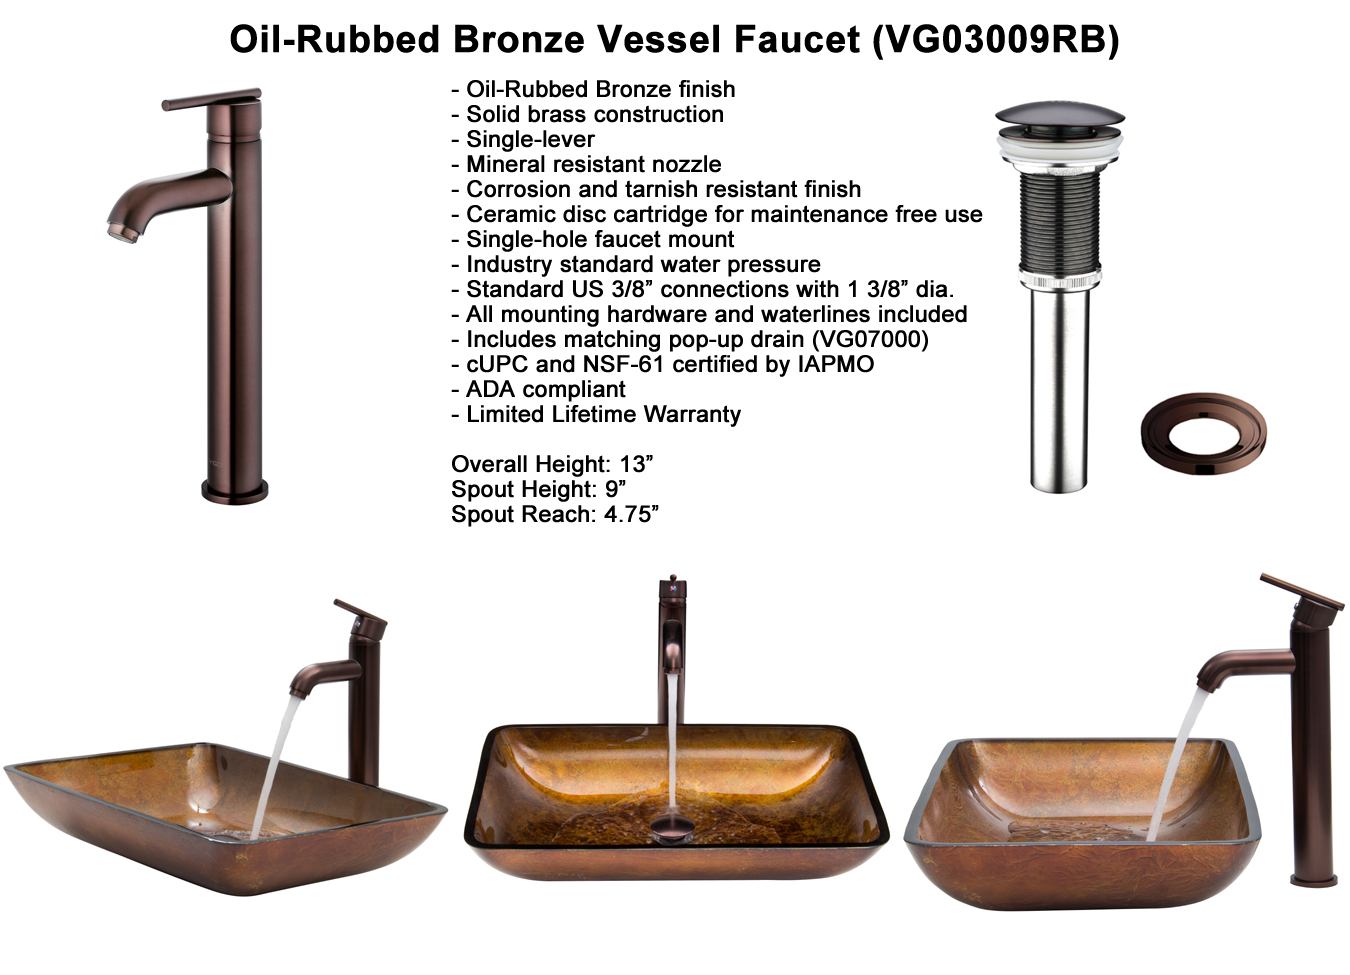 Faucet Set 2 - Waterfall Faucet in Oil-Rubbed Bronze (VGT007RBRCT)